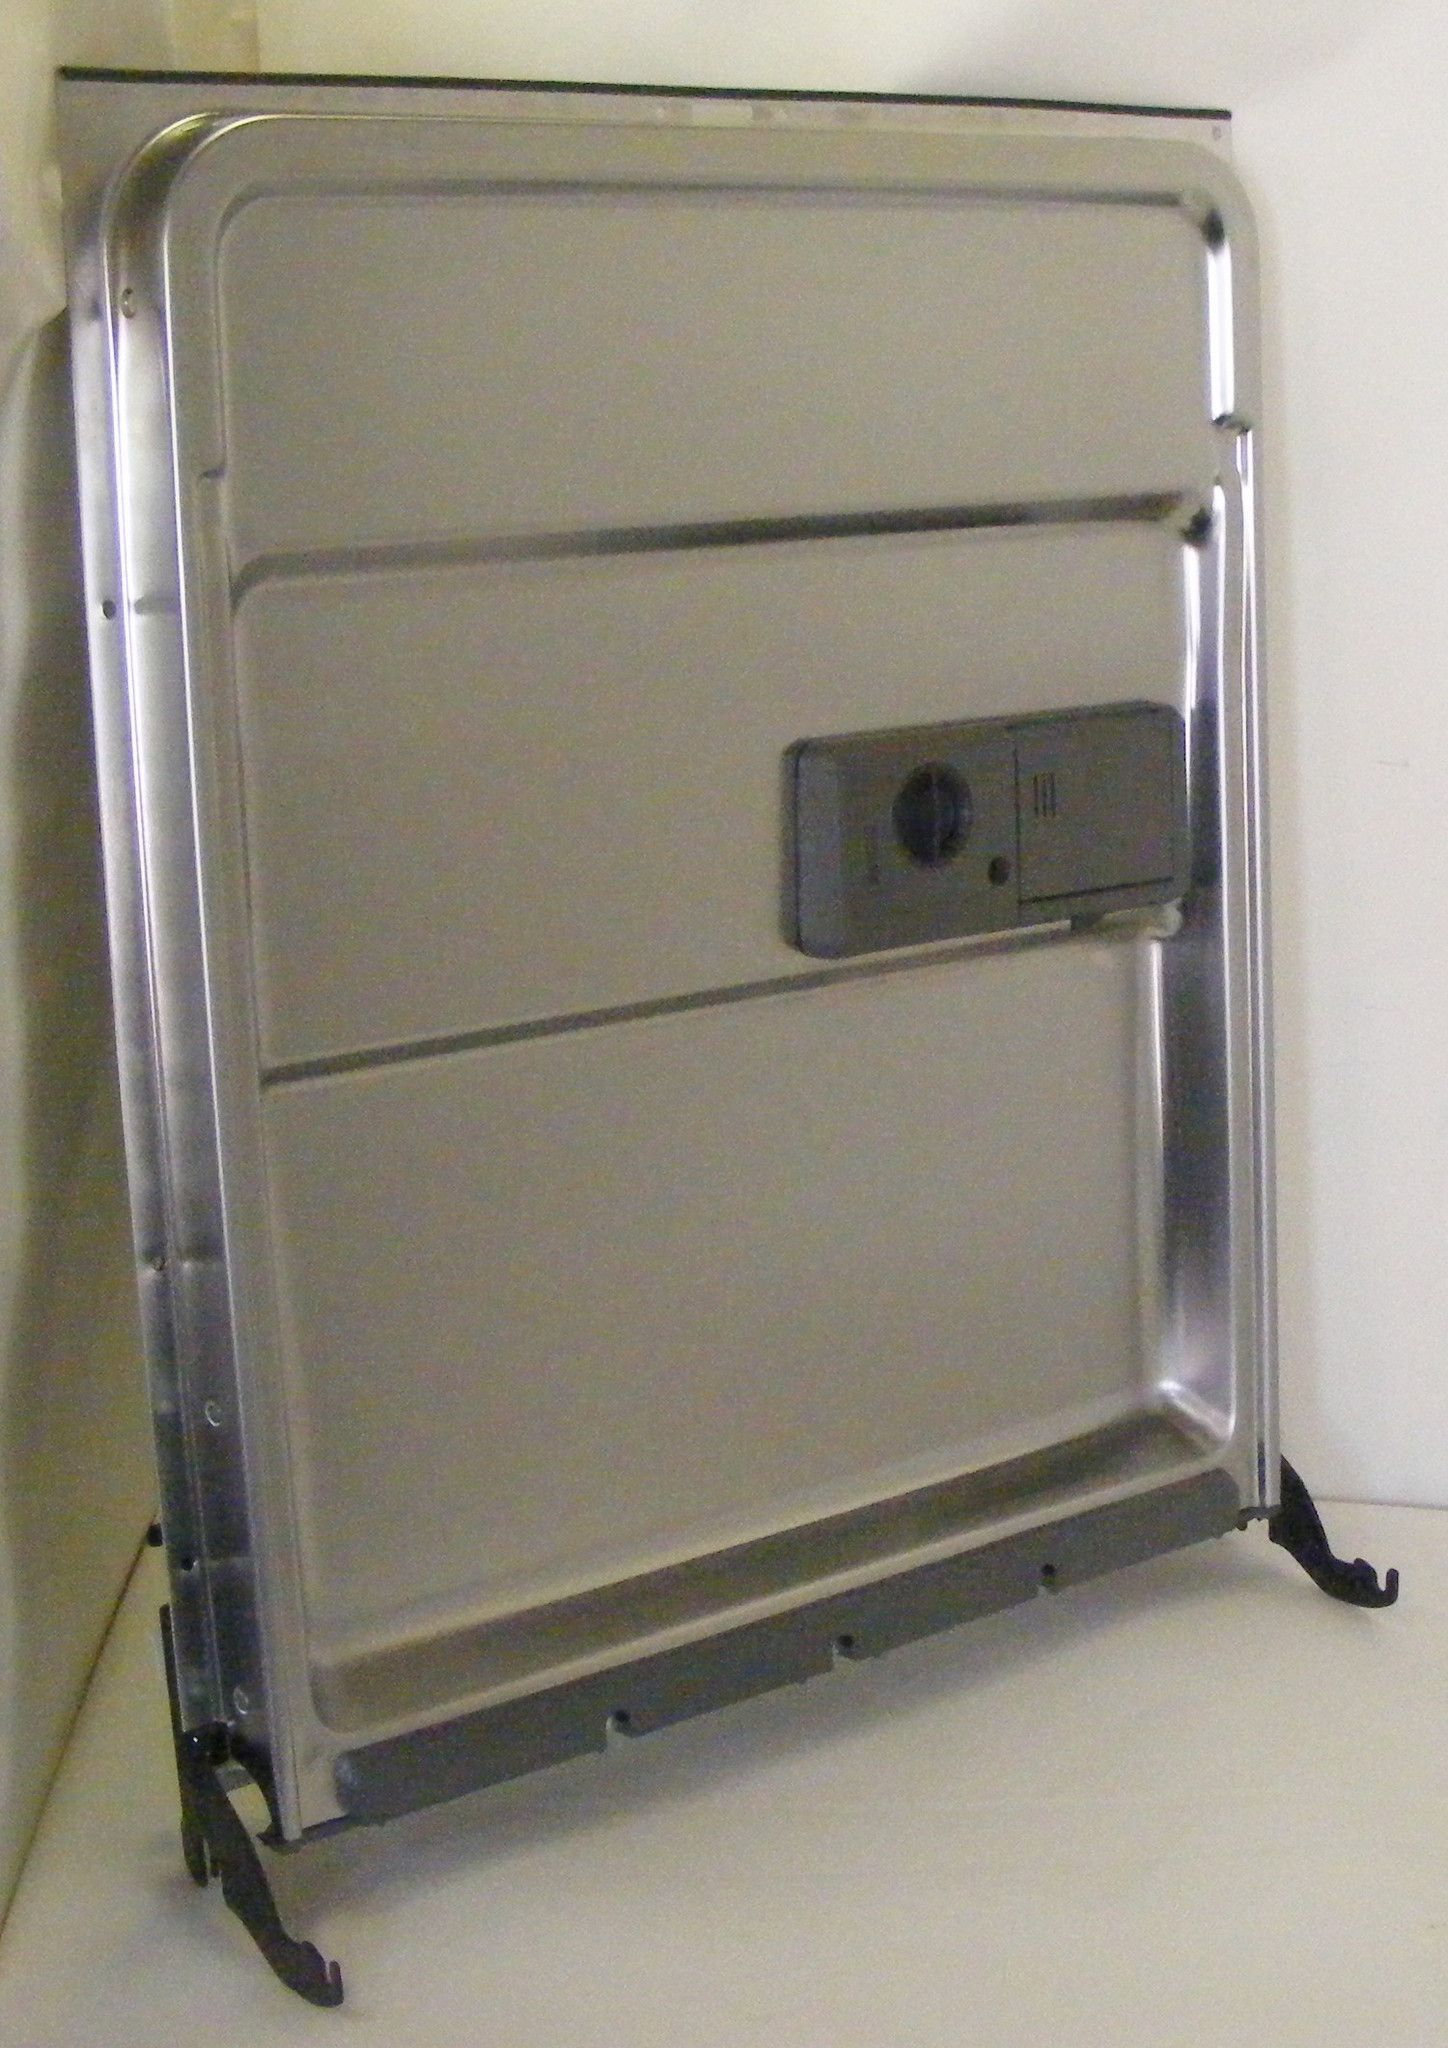 This Is A New Fits Many Whirlpool Maytag And Kenmore Models Mdb7949sdh0 Plus Many Similar Makes And Models Deterg Whirlpool Dishwasher Panel Doors Paneling